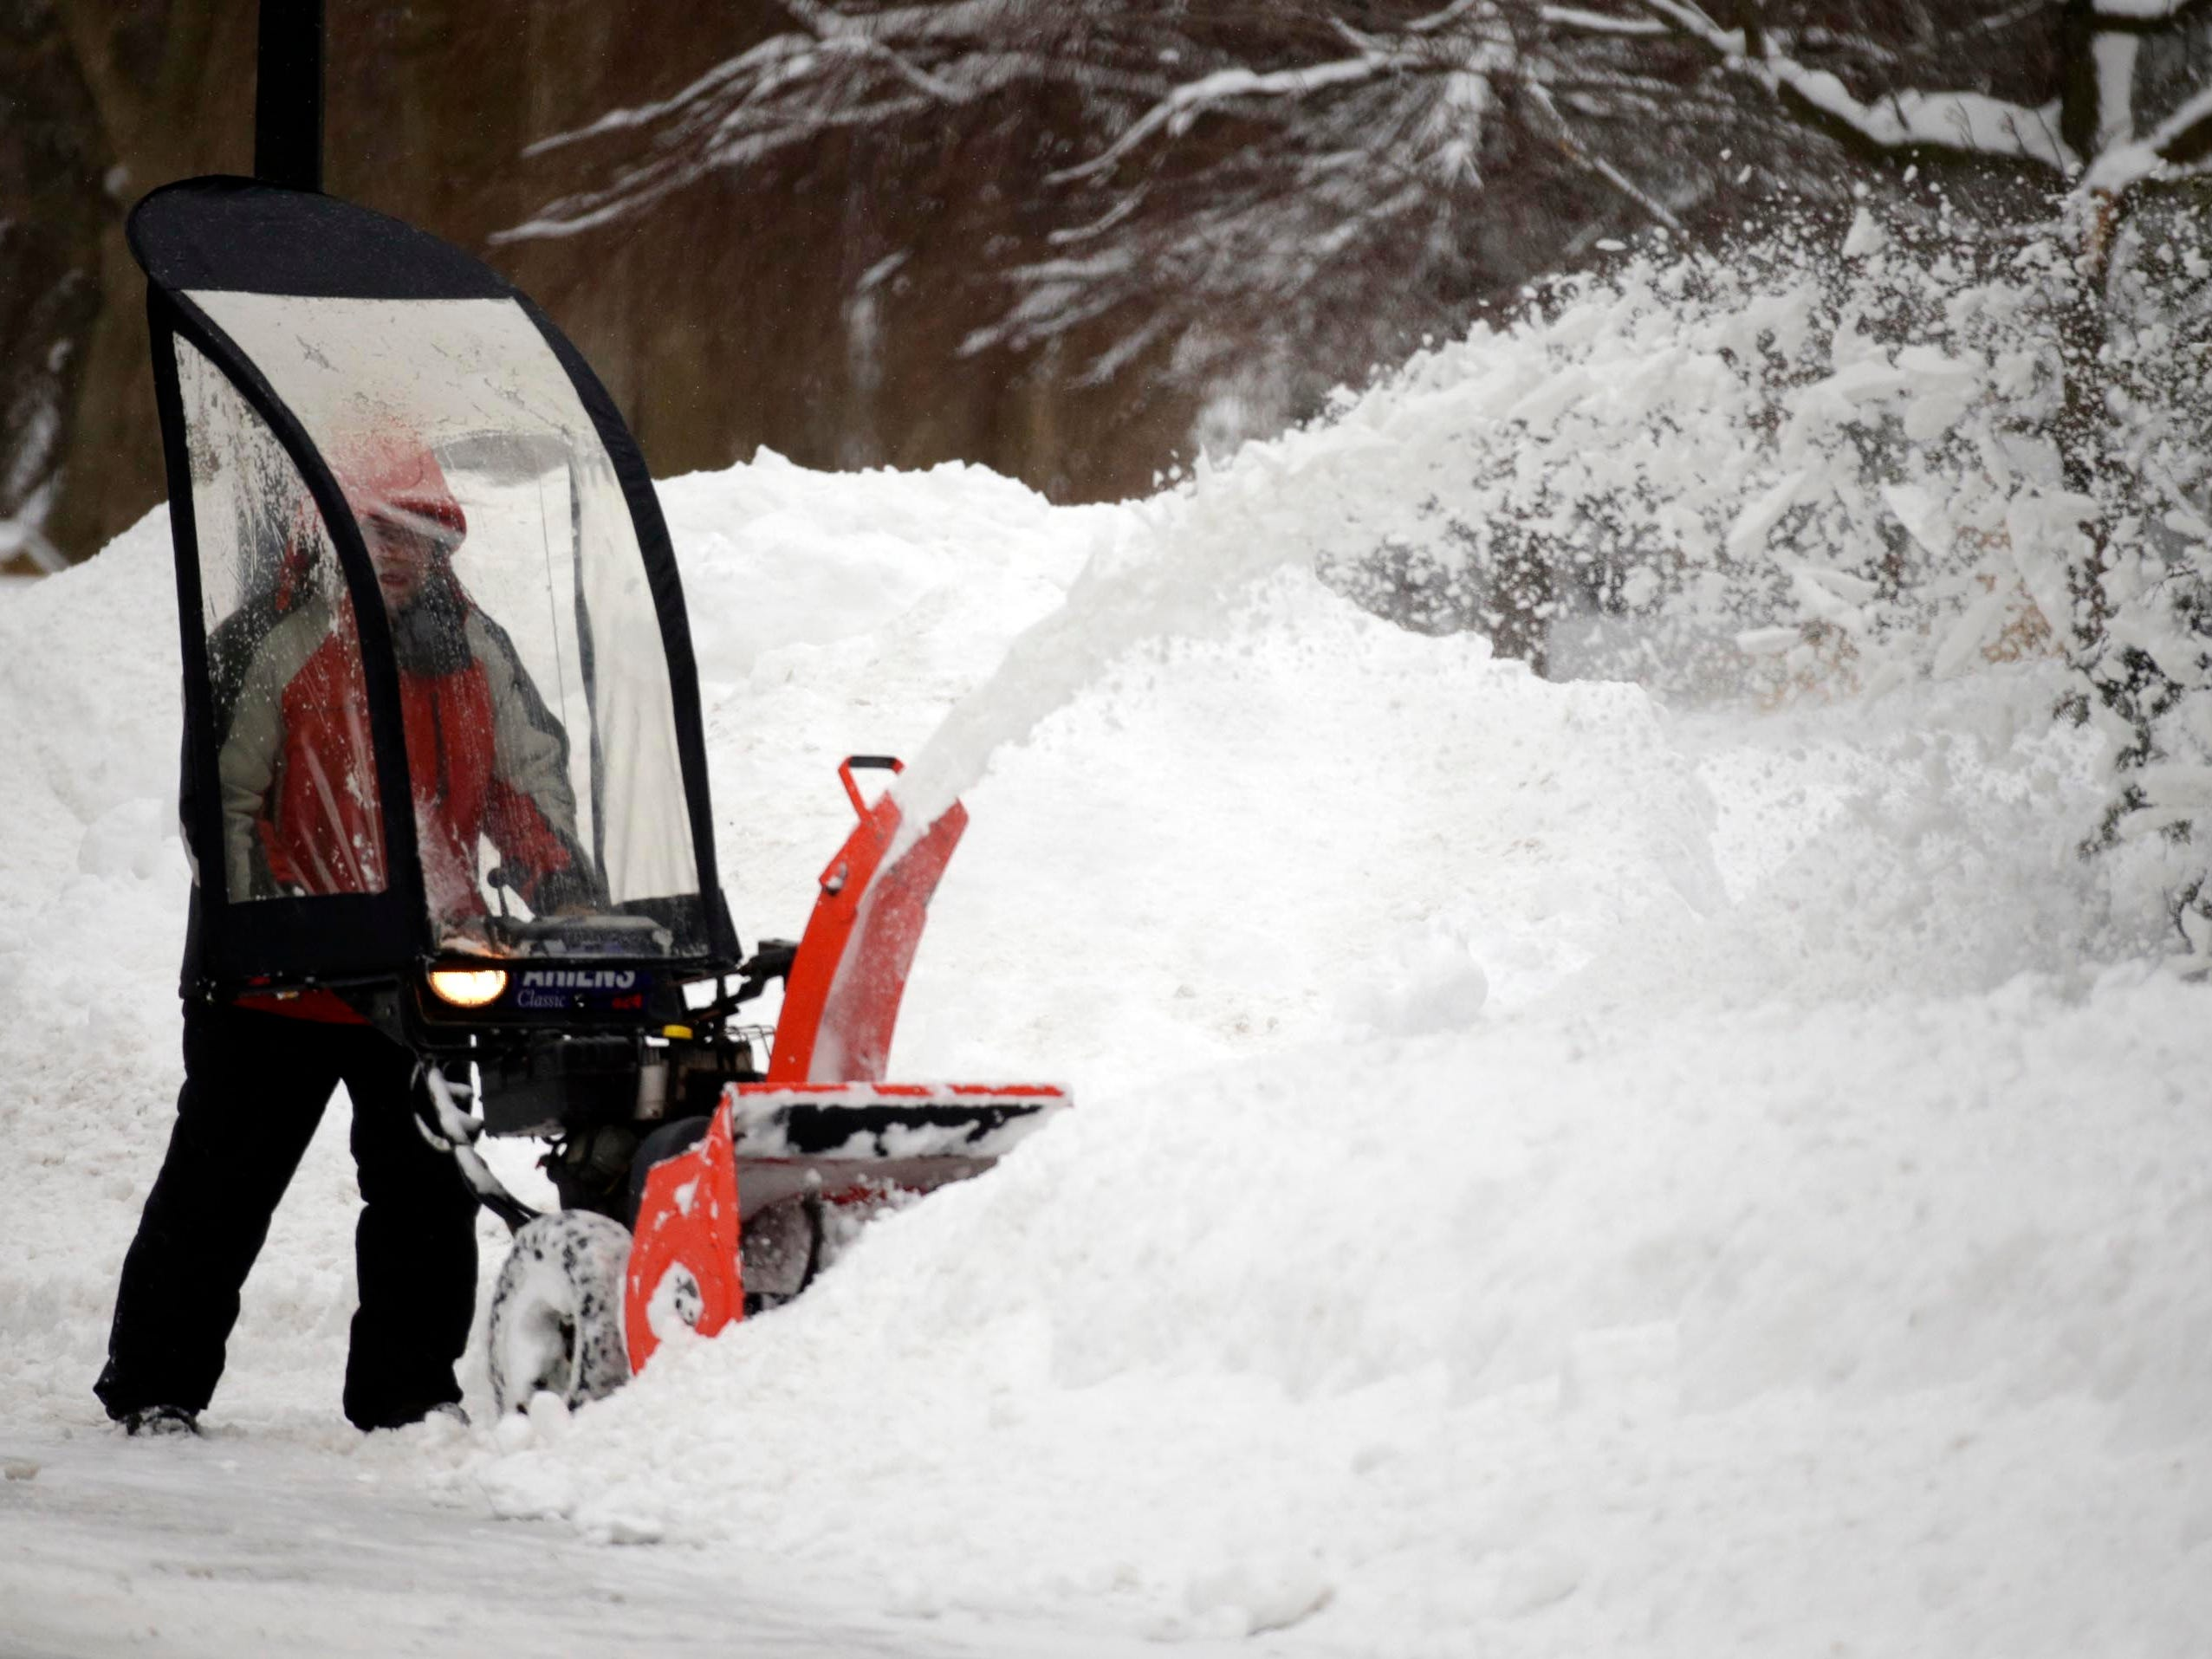 David Weinhold of Sheboygan Falls, removes snow from his driveway, Tuesday, February 12, 2019, in Sheboygan Falls, Wis.